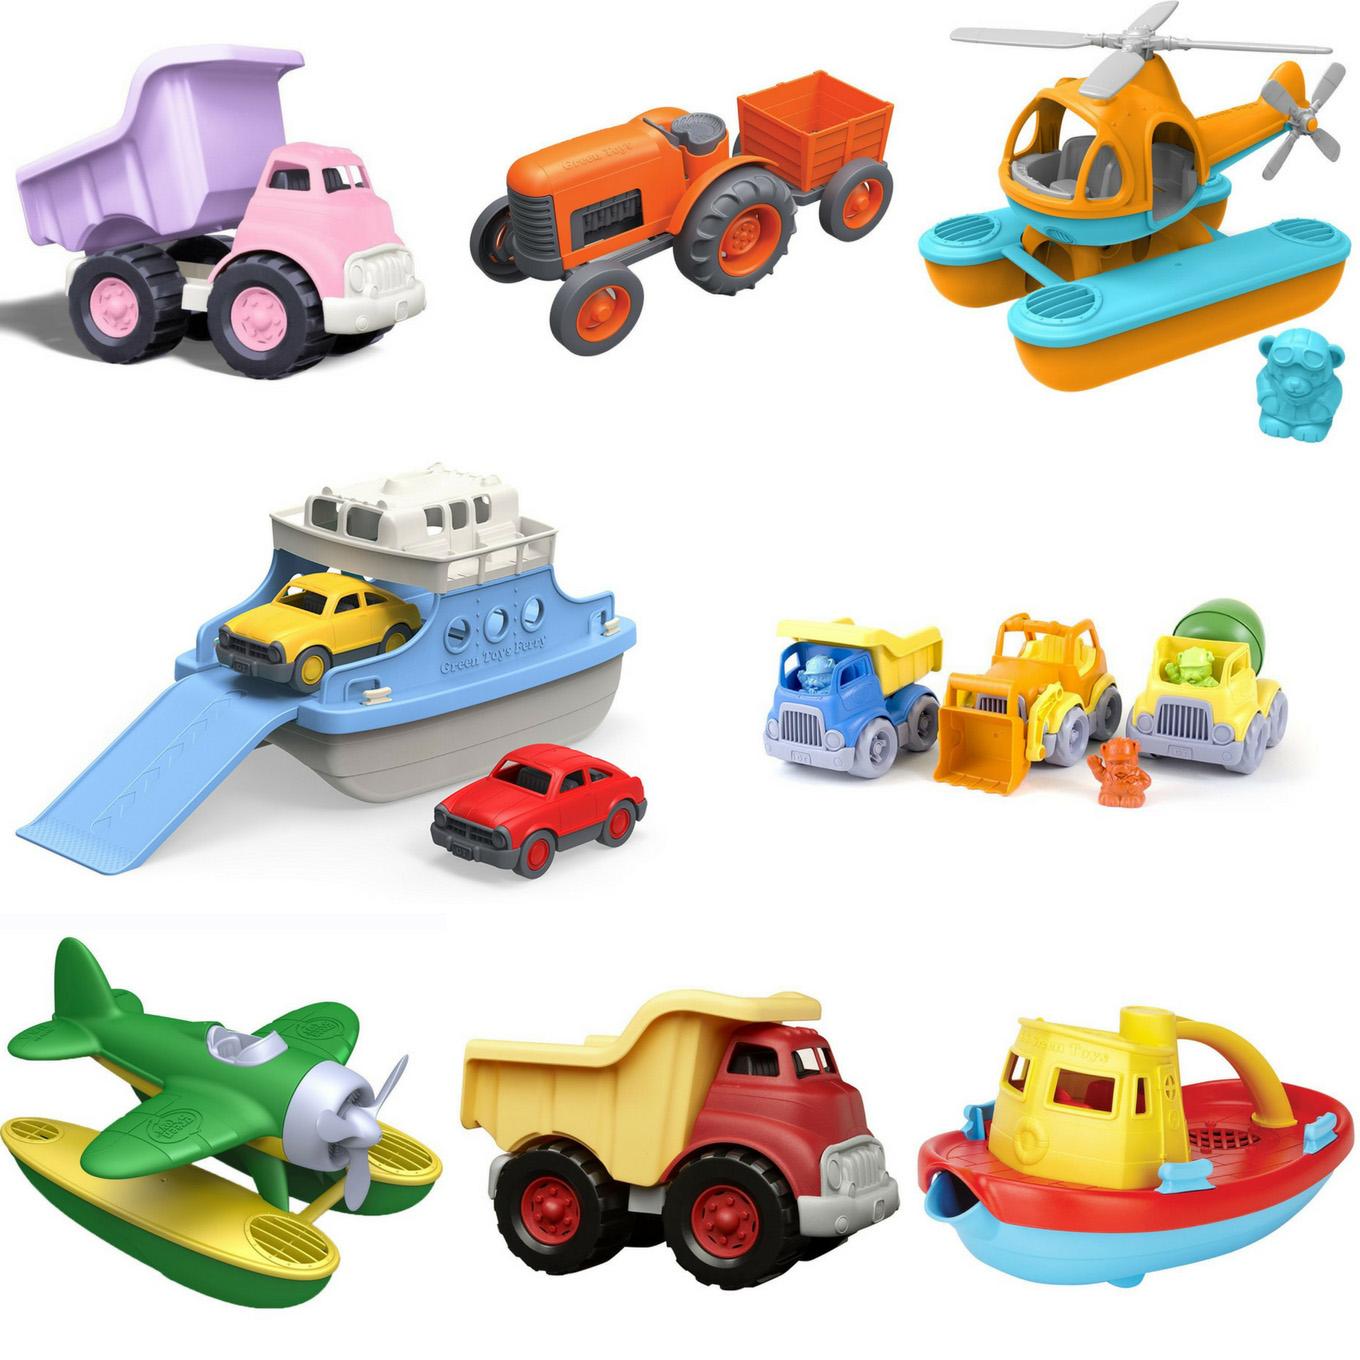 Purchasing high quality sand toys for kids once saves money and prevents pounds of worthless, broken plastic from entering the landfill.